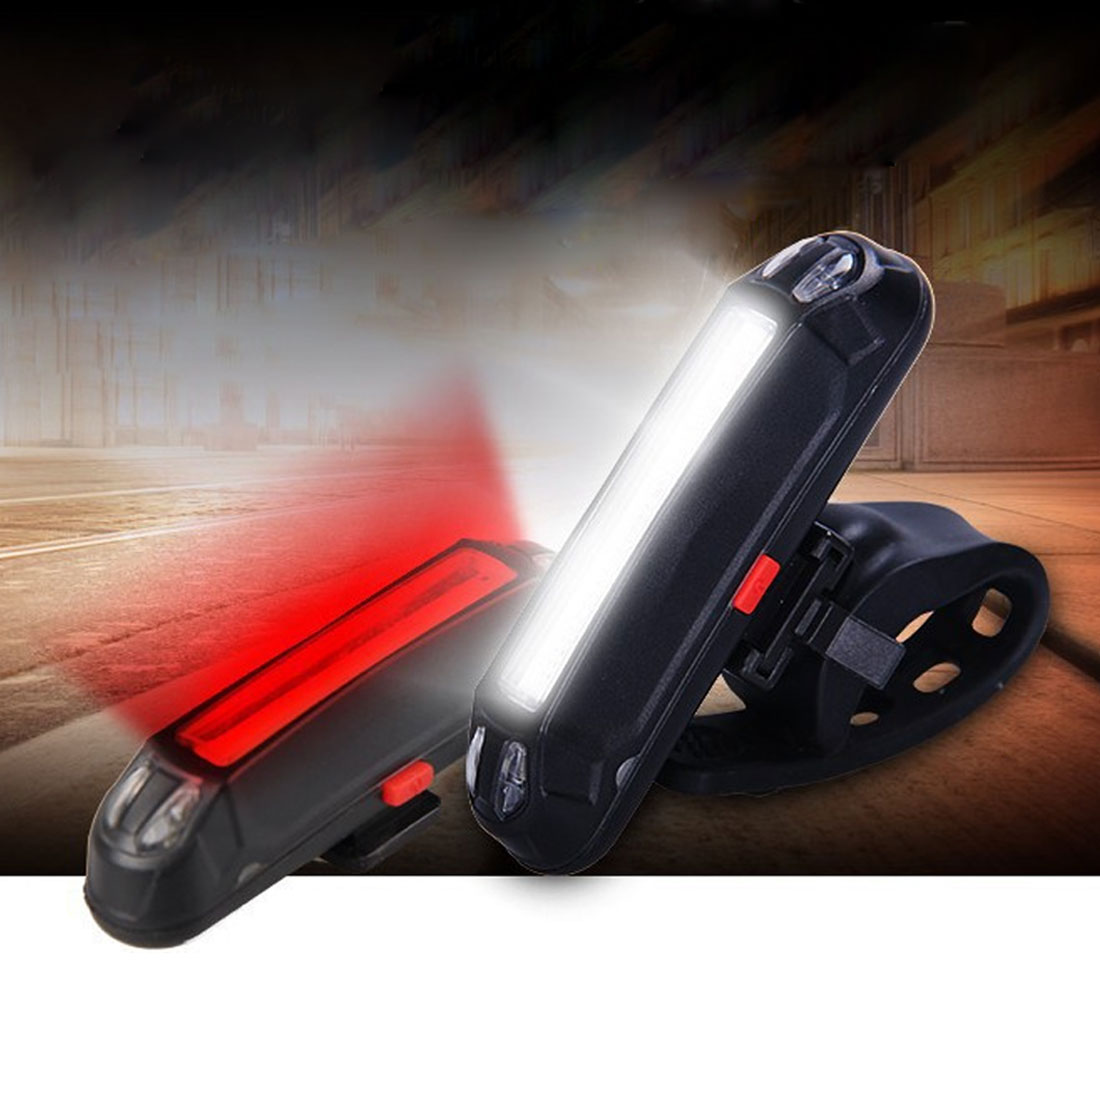 100 Lumens Rechargeable COB LED USB Mountain Bike Tail Light Taillight Safety Warning Bicycle Rear Light luz bicicleta usb все цены